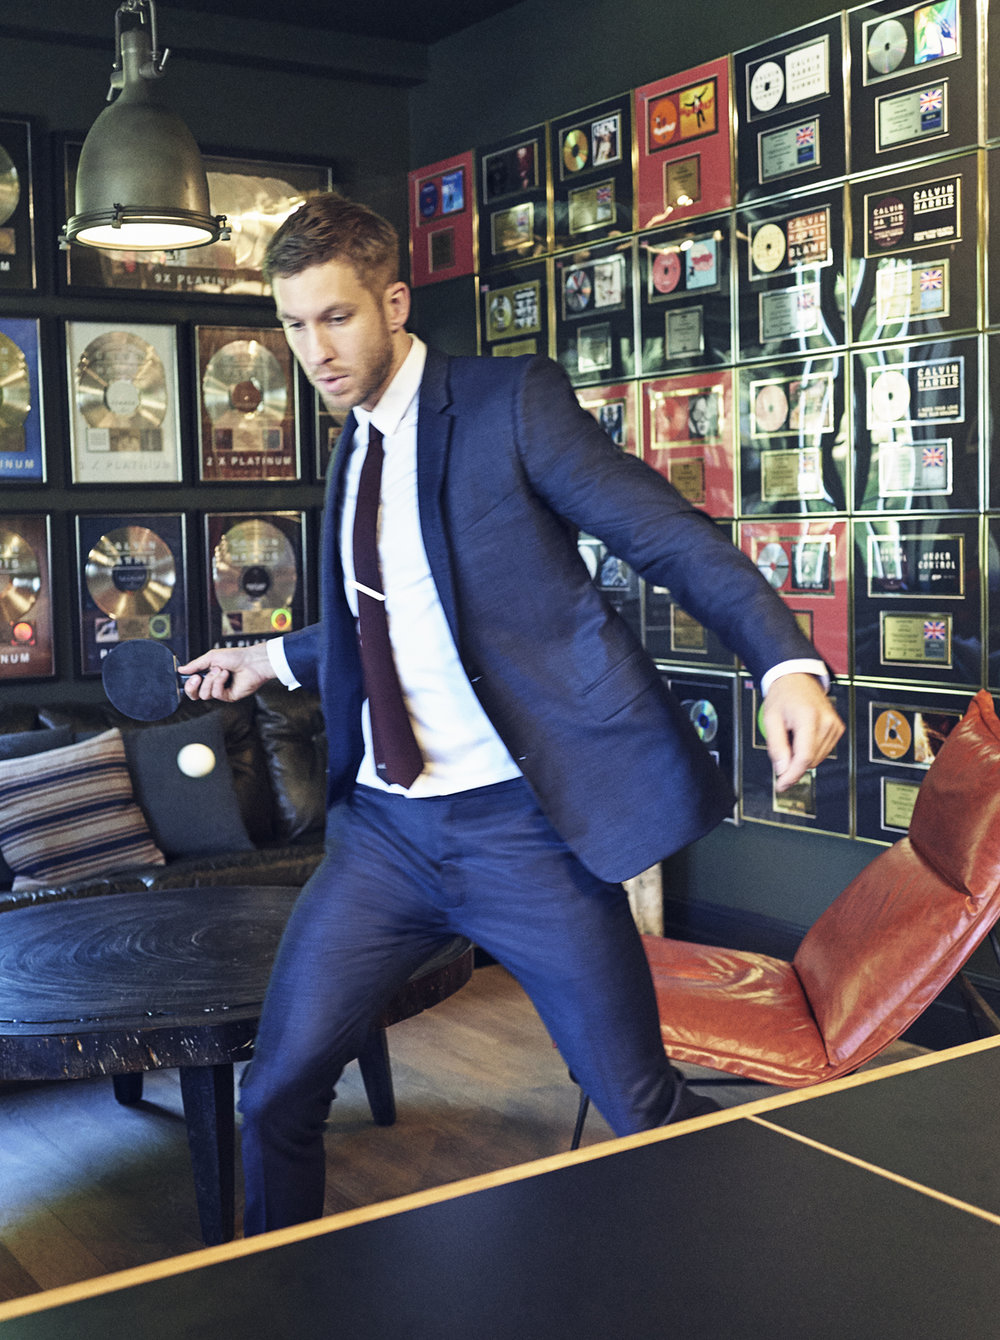 gq-uk-october-2016-calvin-harris-by-gavin-bond-04.jpg